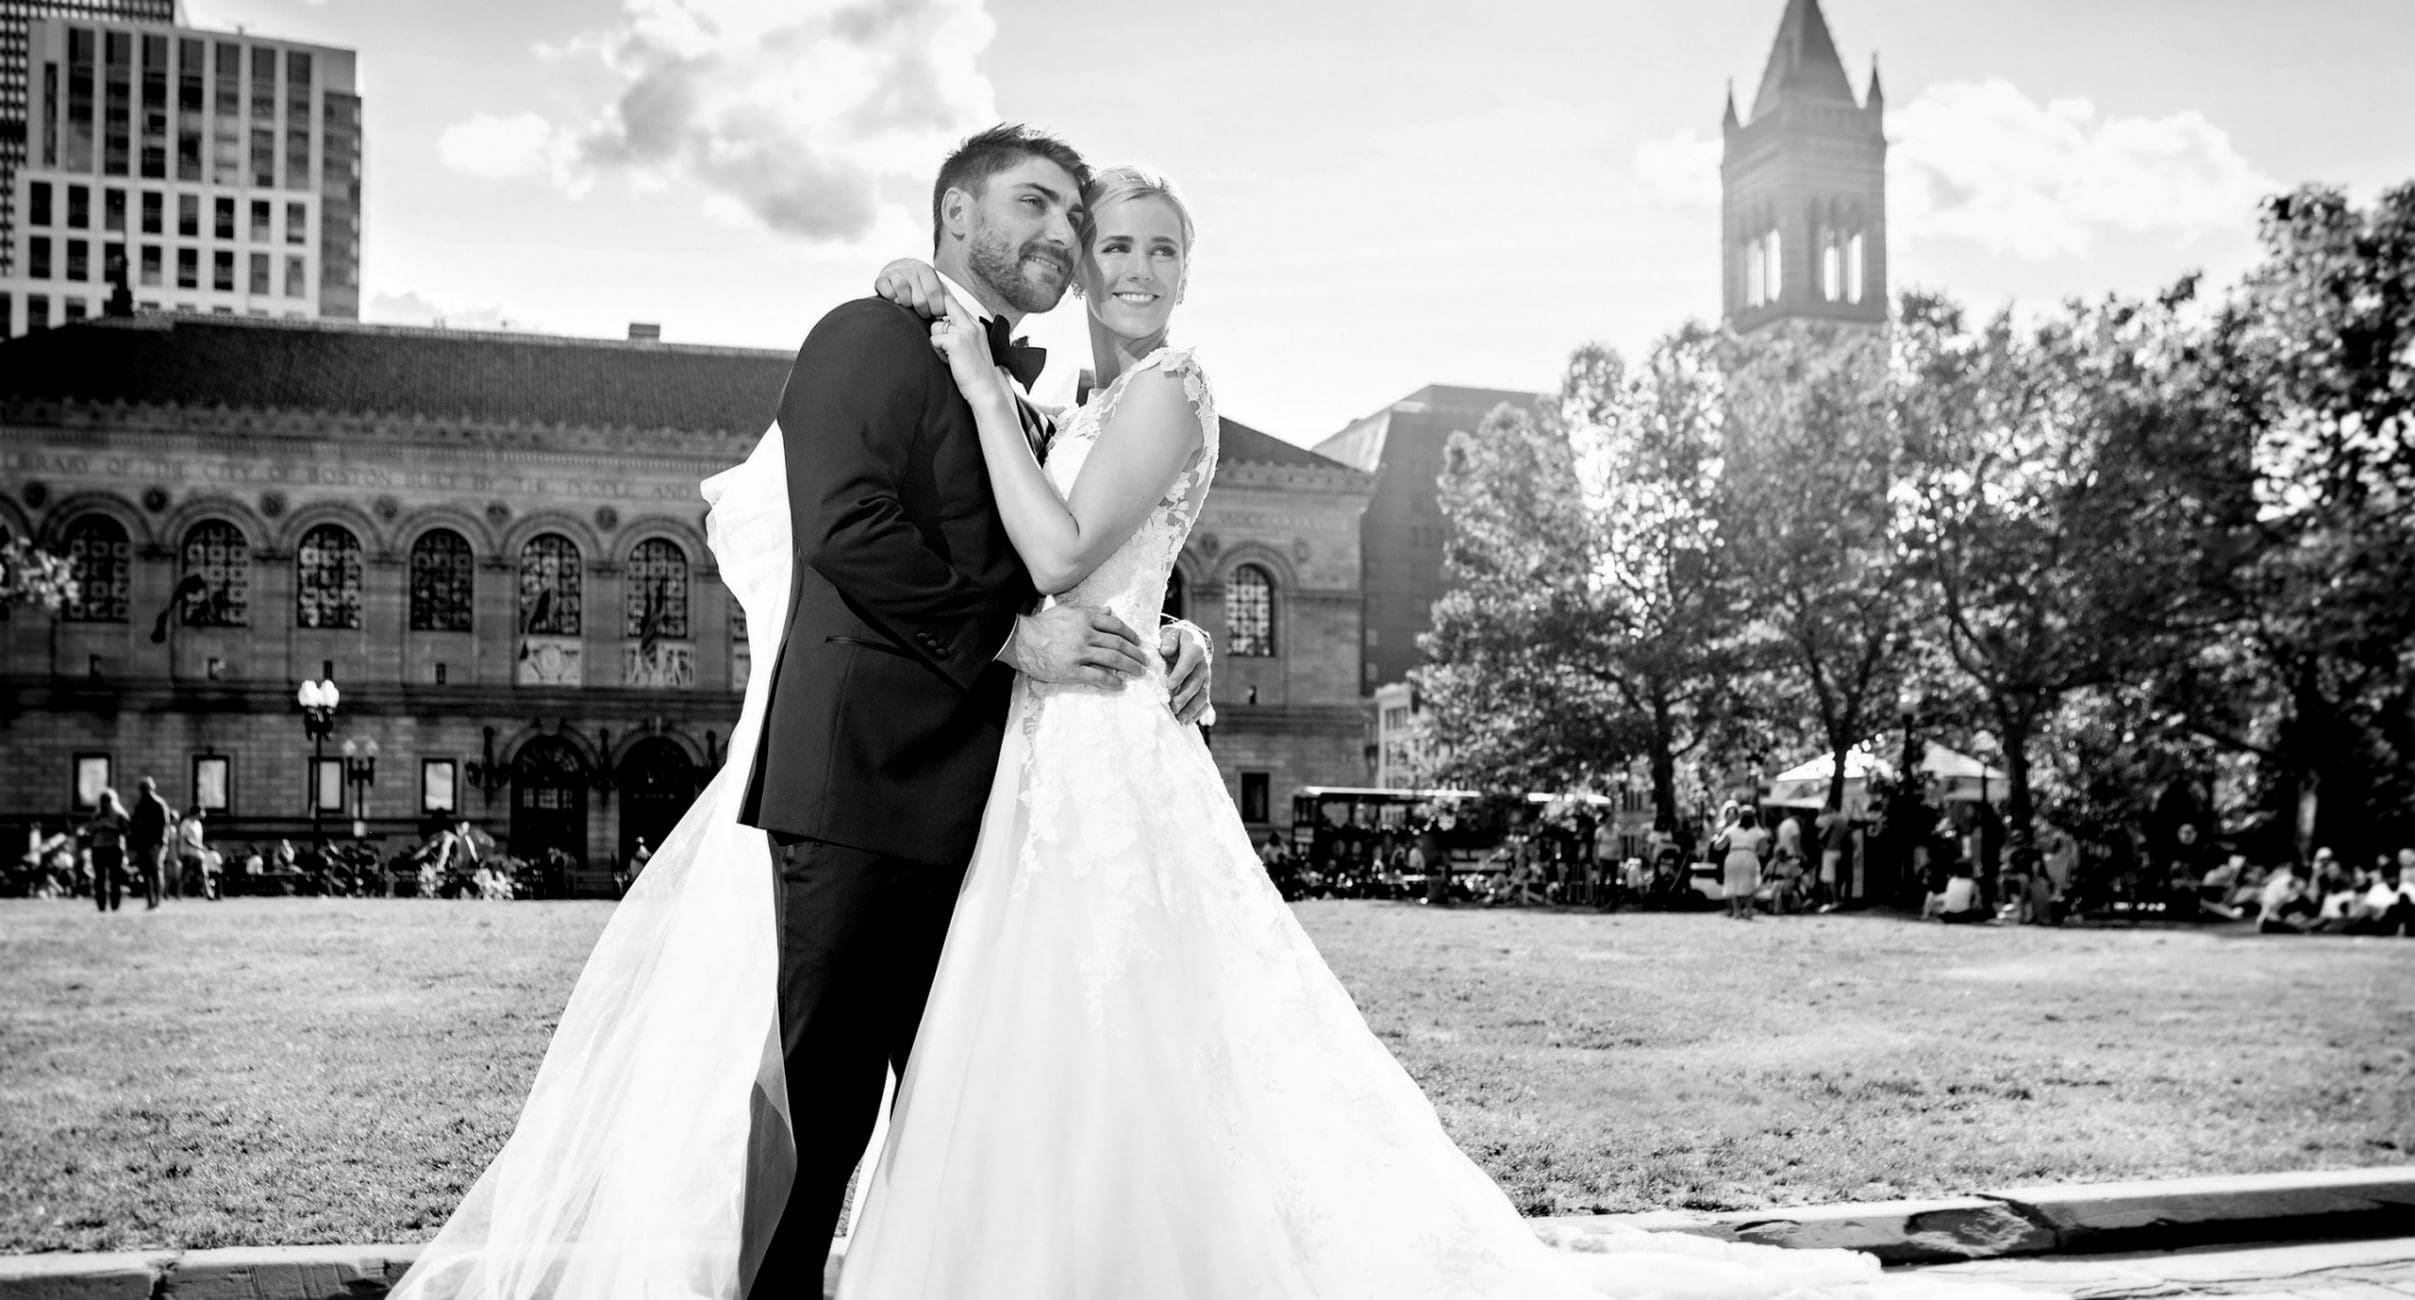 Photograph of Bride and Groom in Copley Square